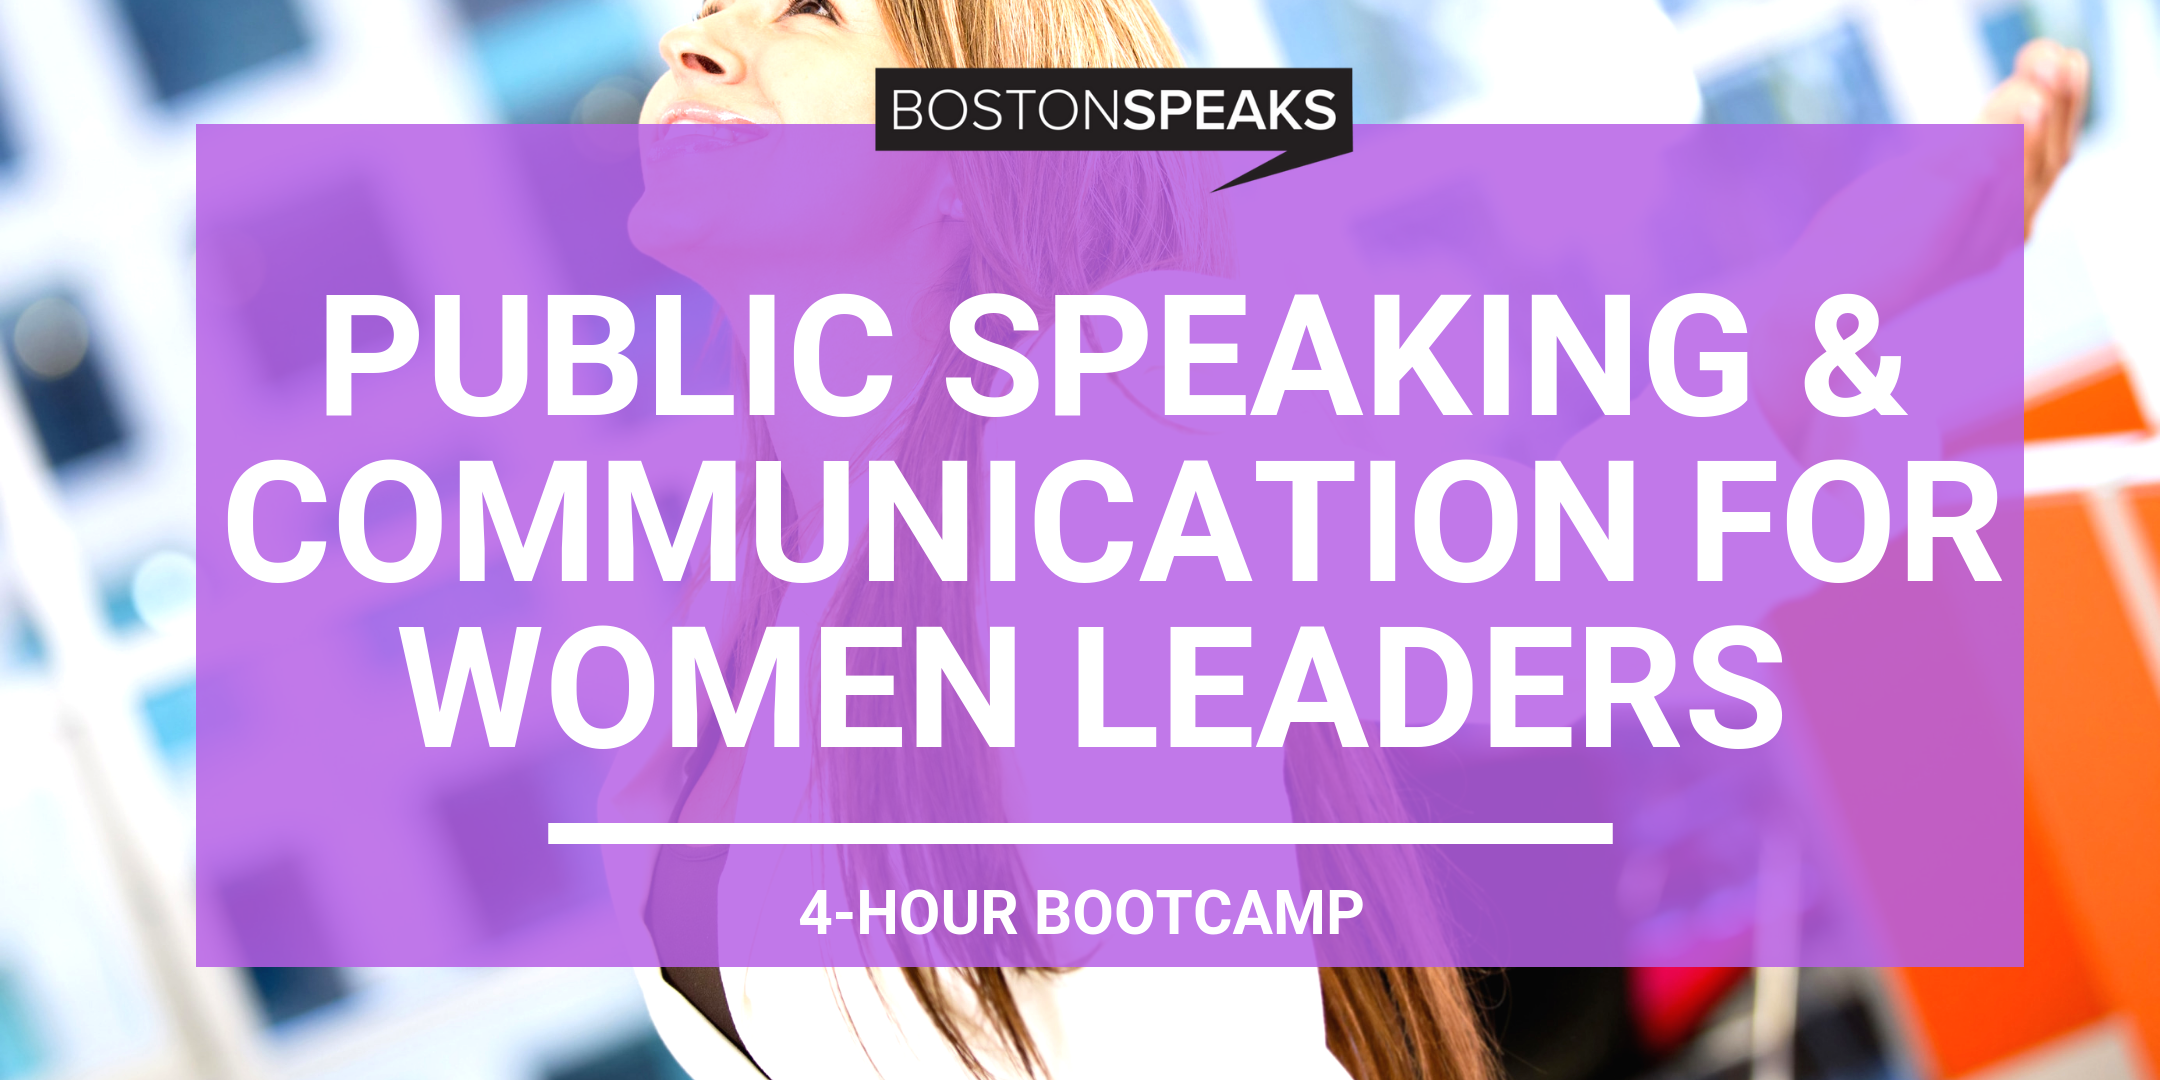 Be Impactful, Be Bold, Be Yourself - PUBLIC SPEAKING AND LEADERSHIP COMMUNICATION TRAINING FOR WOMEN (4-HOUR SEMINAR)